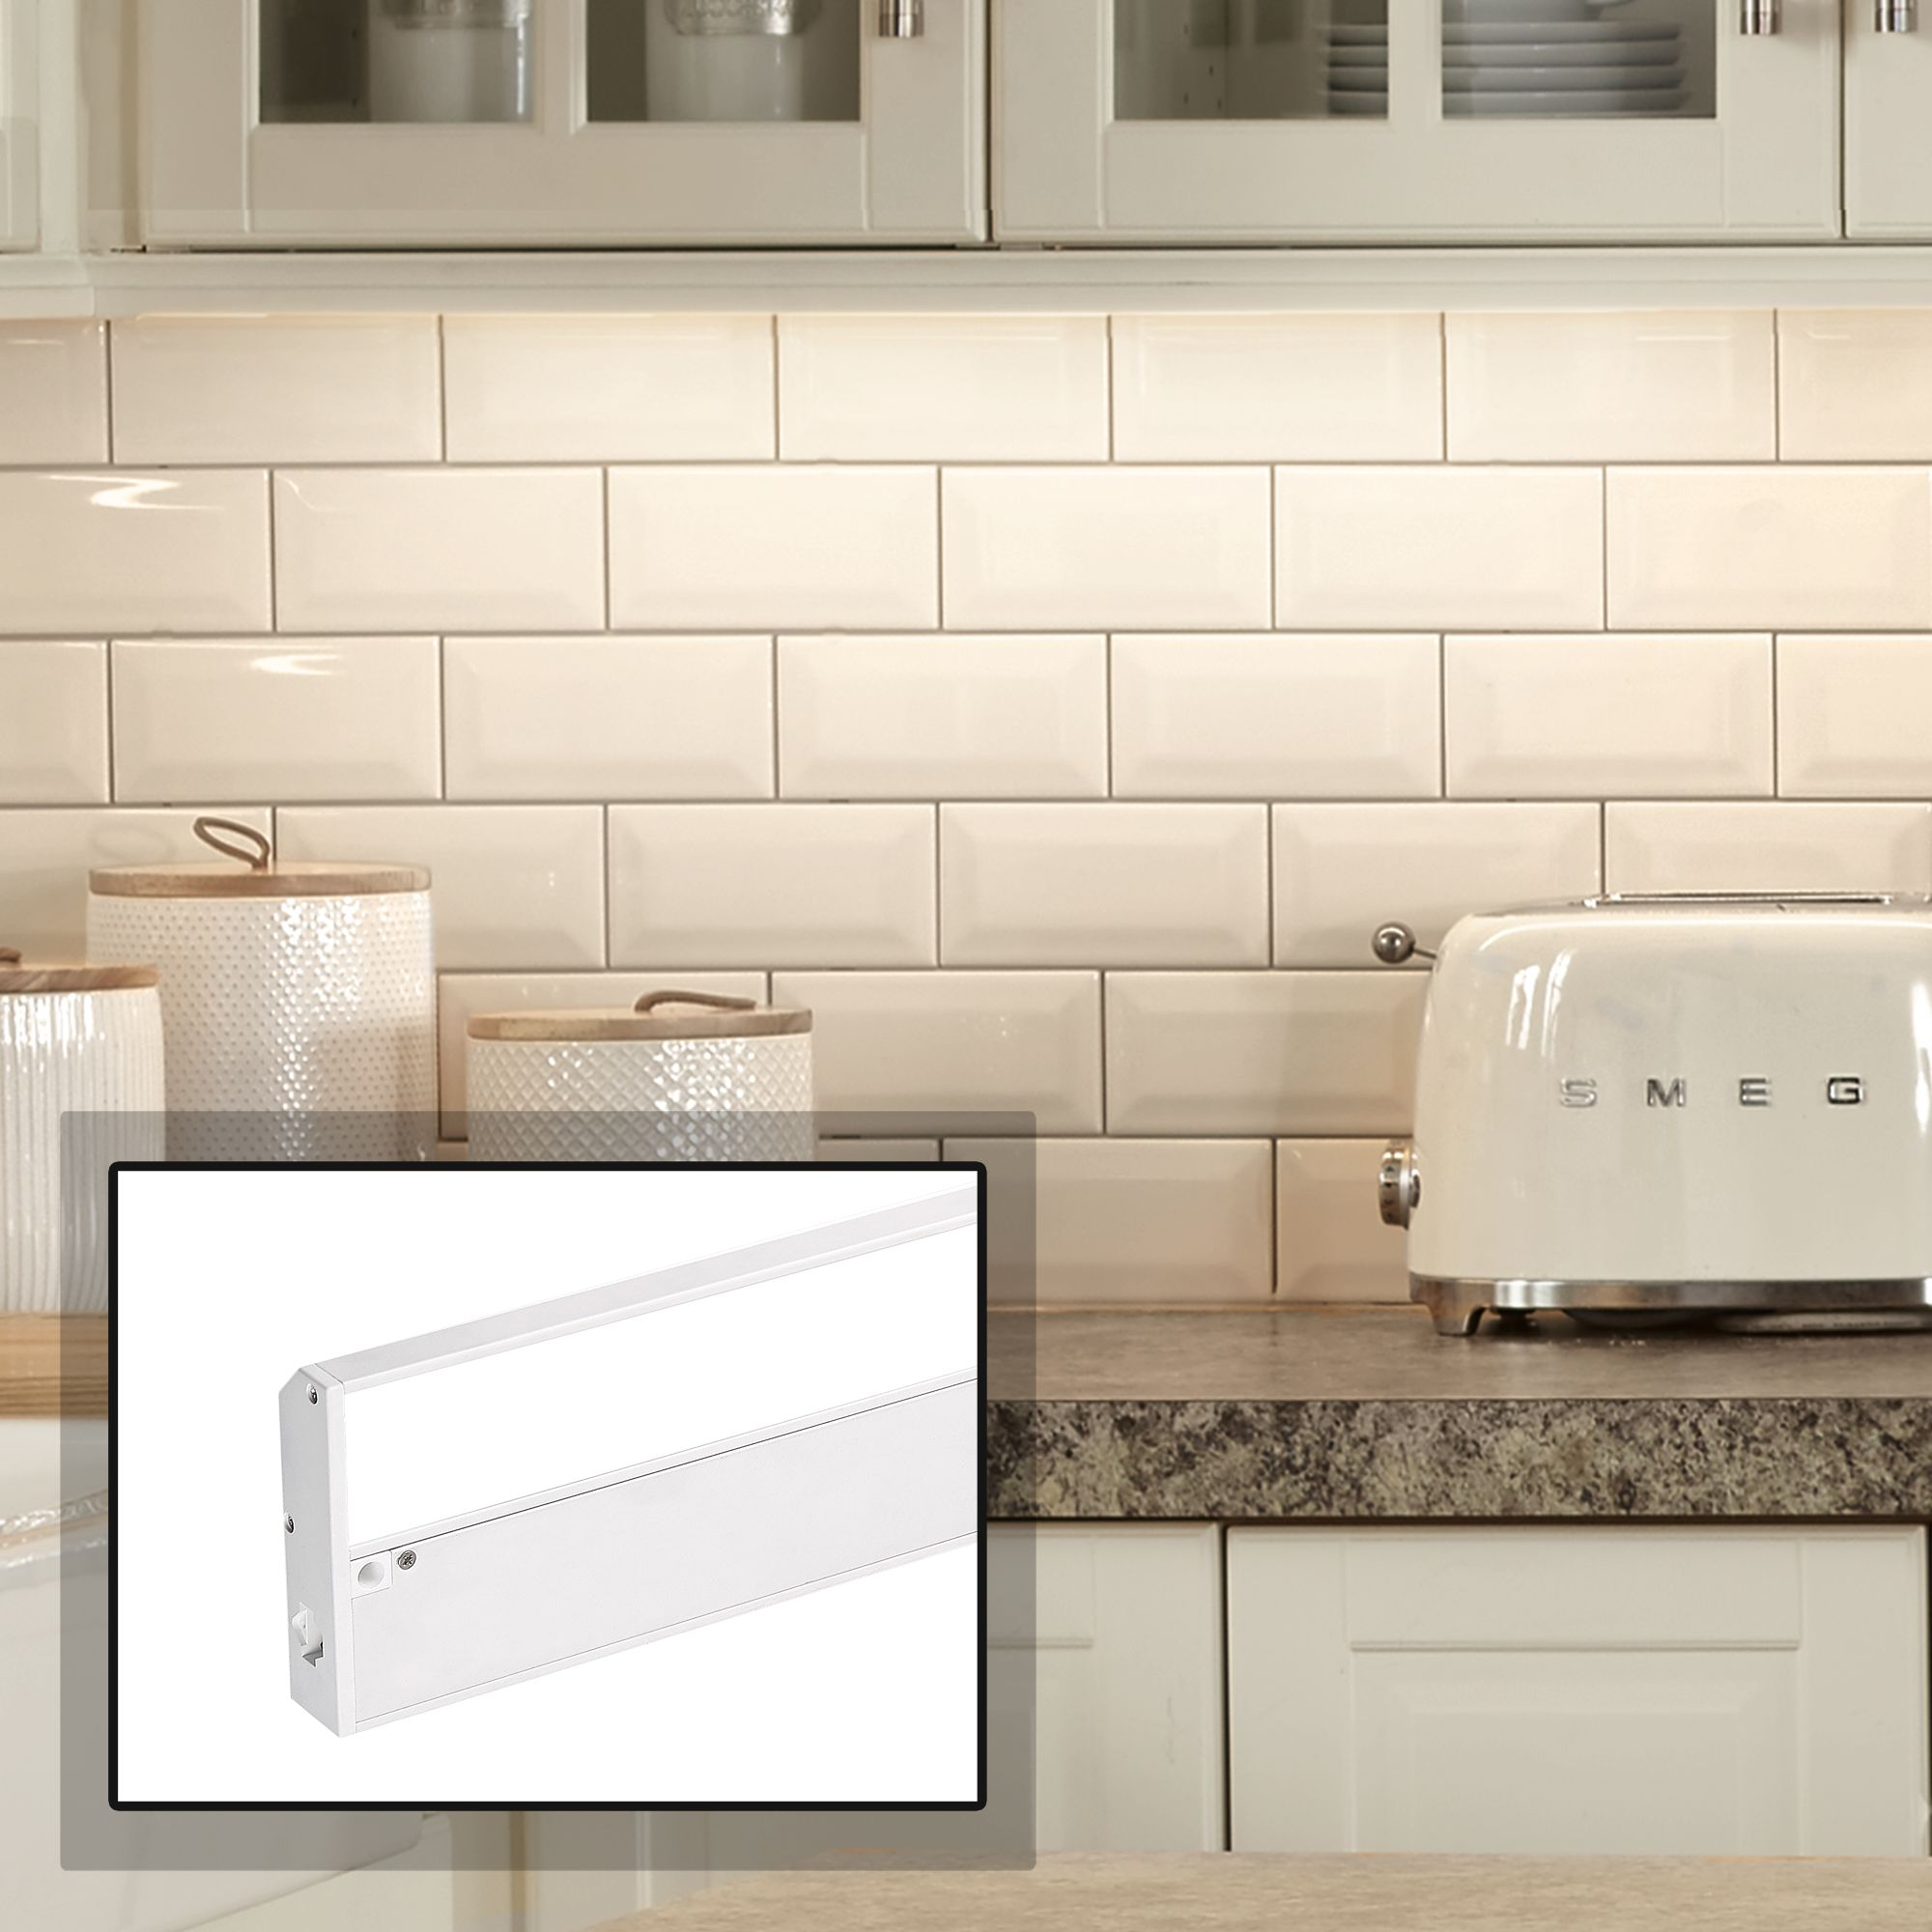 Cyber Tech 33  Wide White LED Under Cabinet Light & LED Under Cabinet Lighting - Kitchens and Counters | Lamps Plus